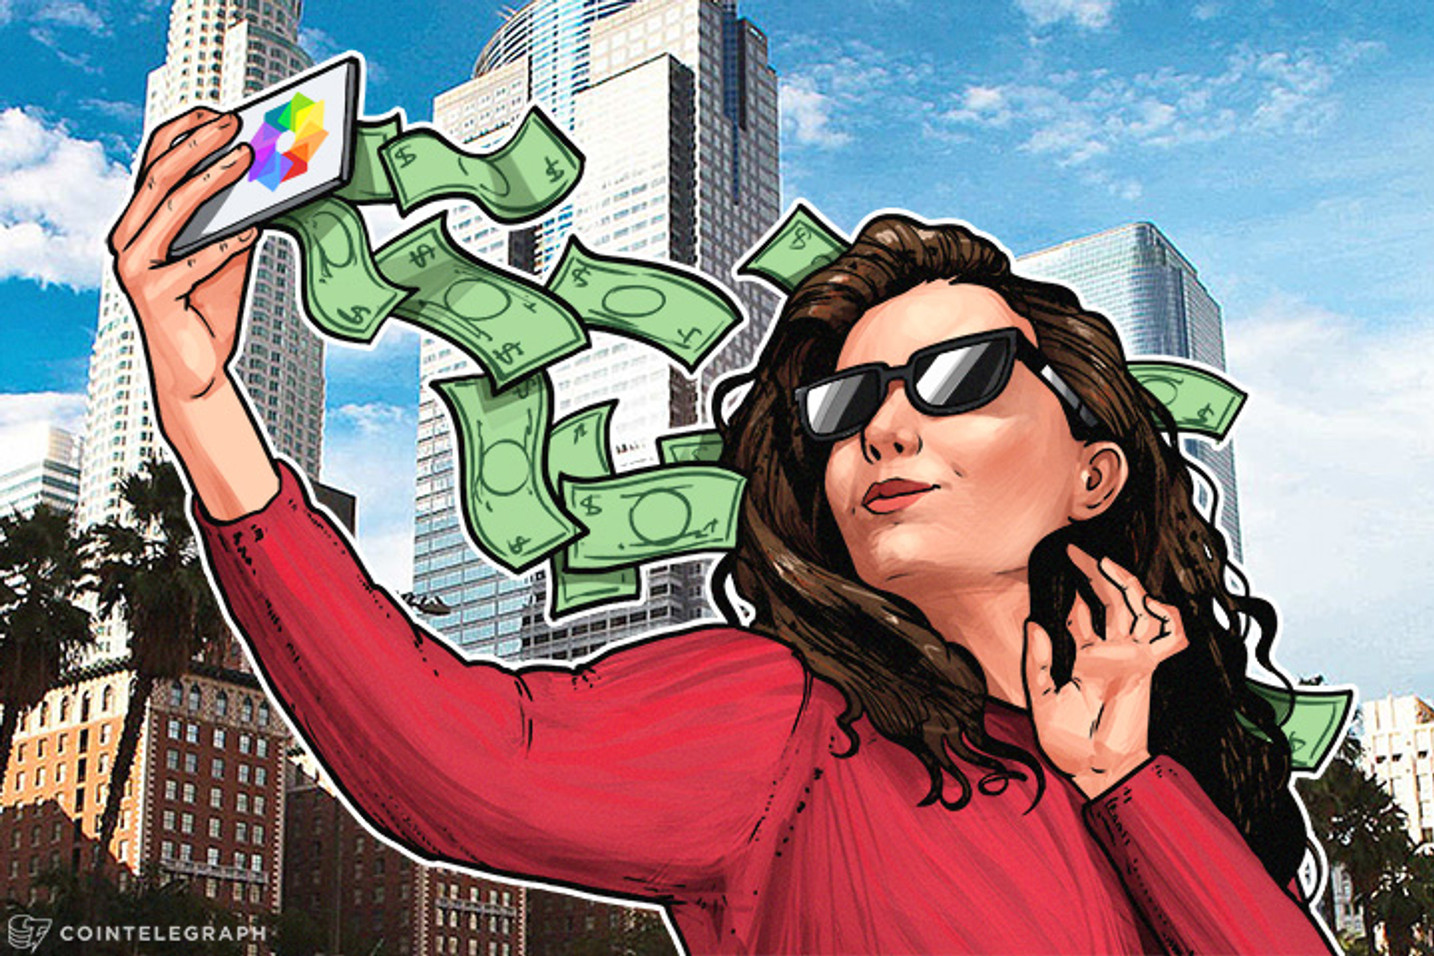 Sharing Selfies Could Now Help You Earn Money in Cryptoworld